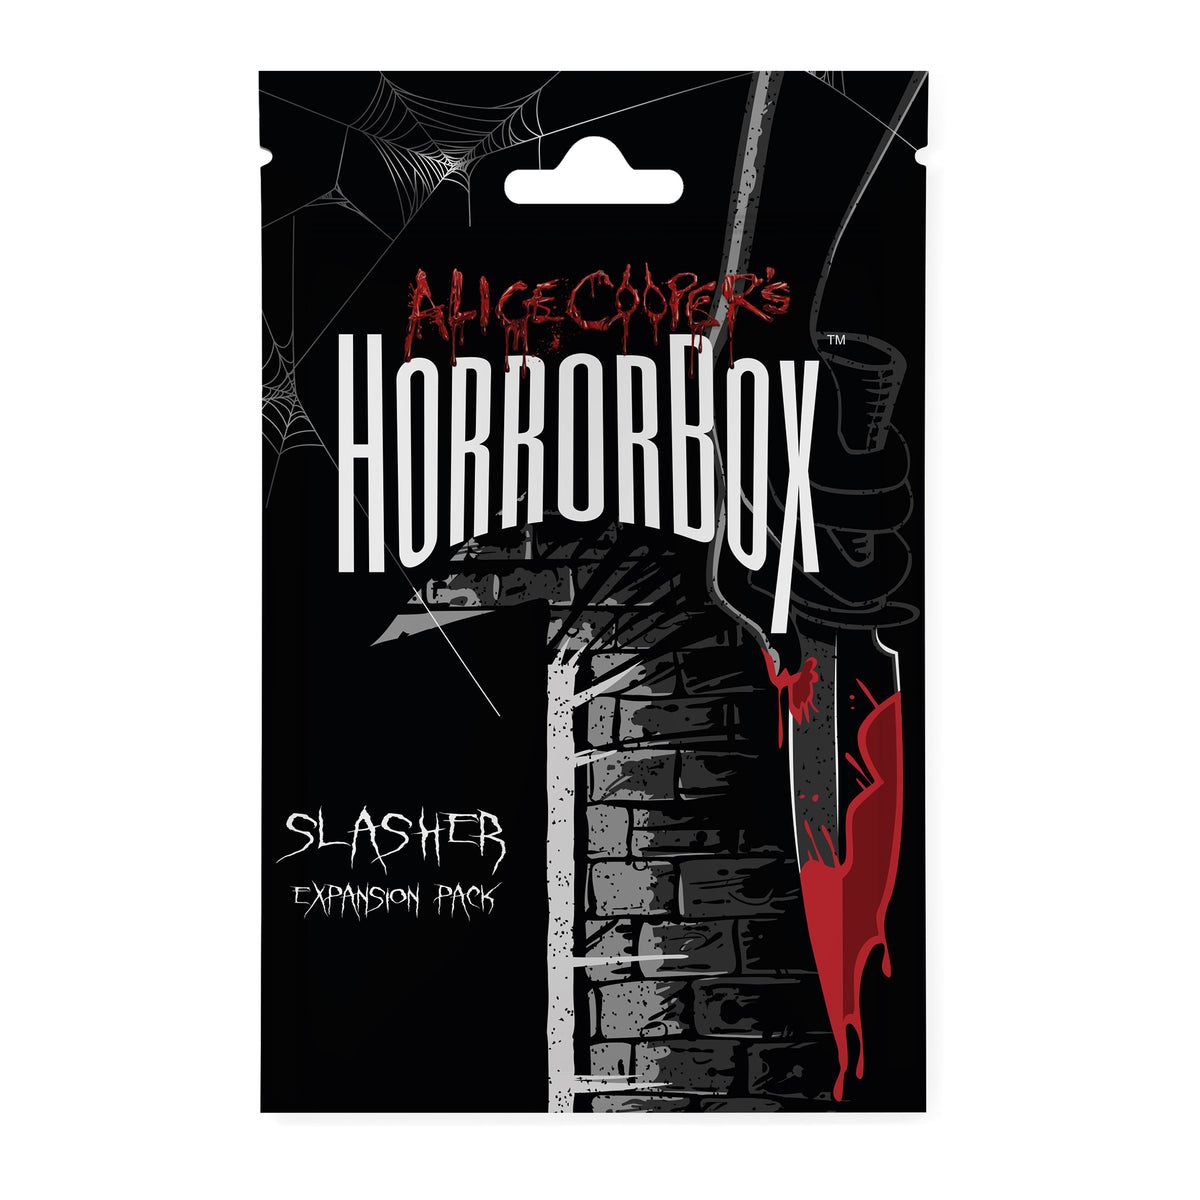 HorrorBox ™ - Slasher Expansion Pack